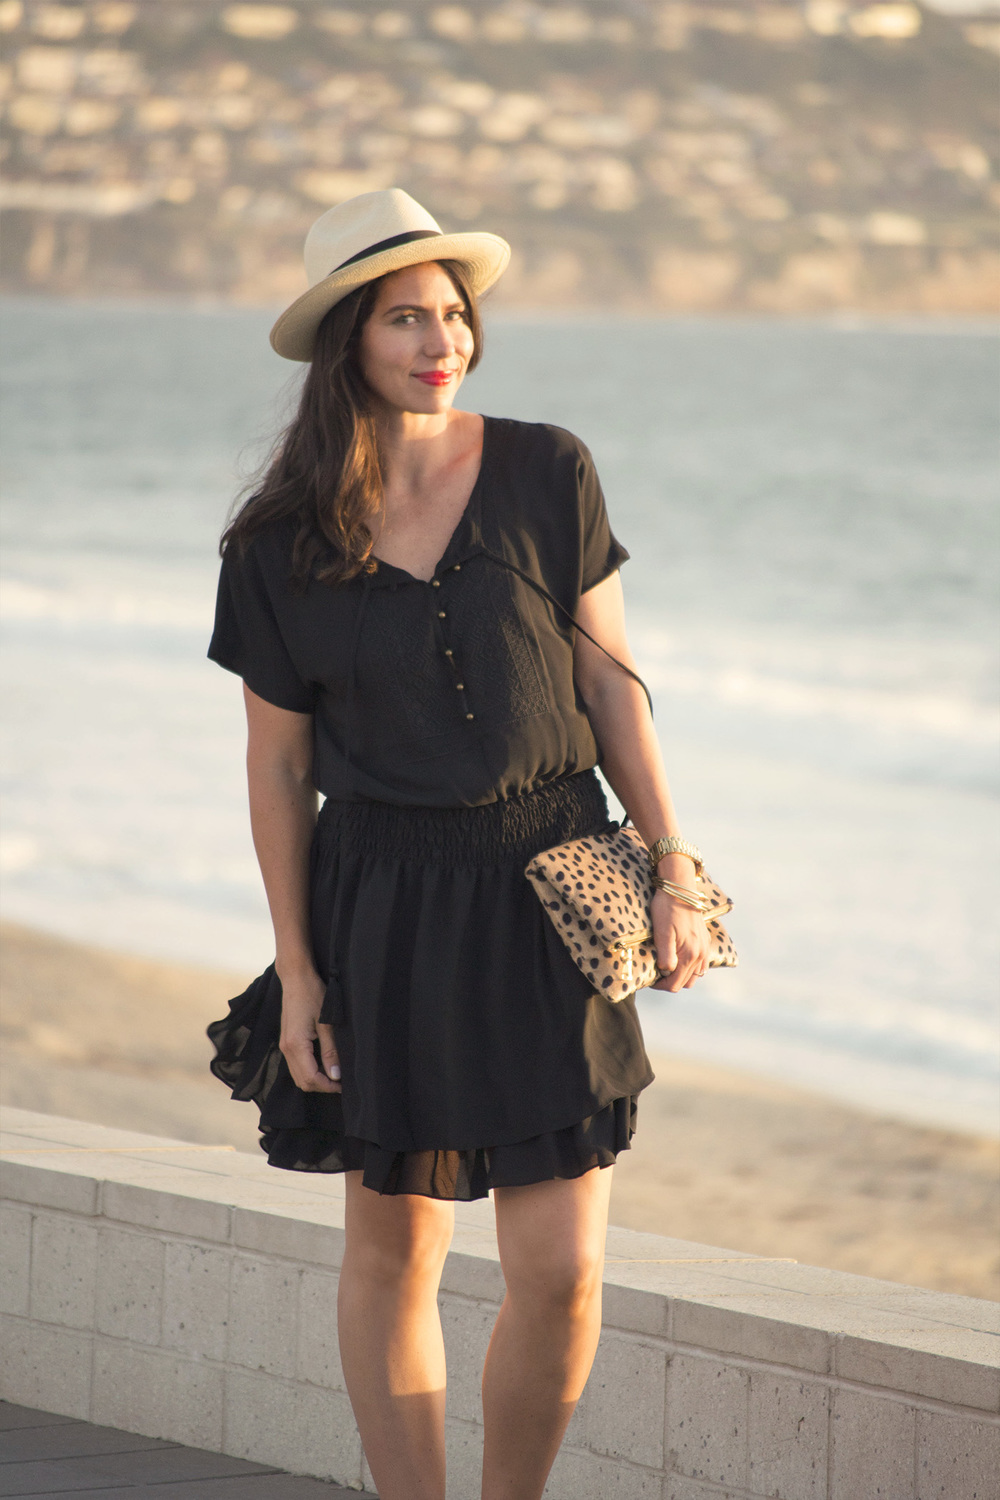 Black Dress Beach 1.jpg